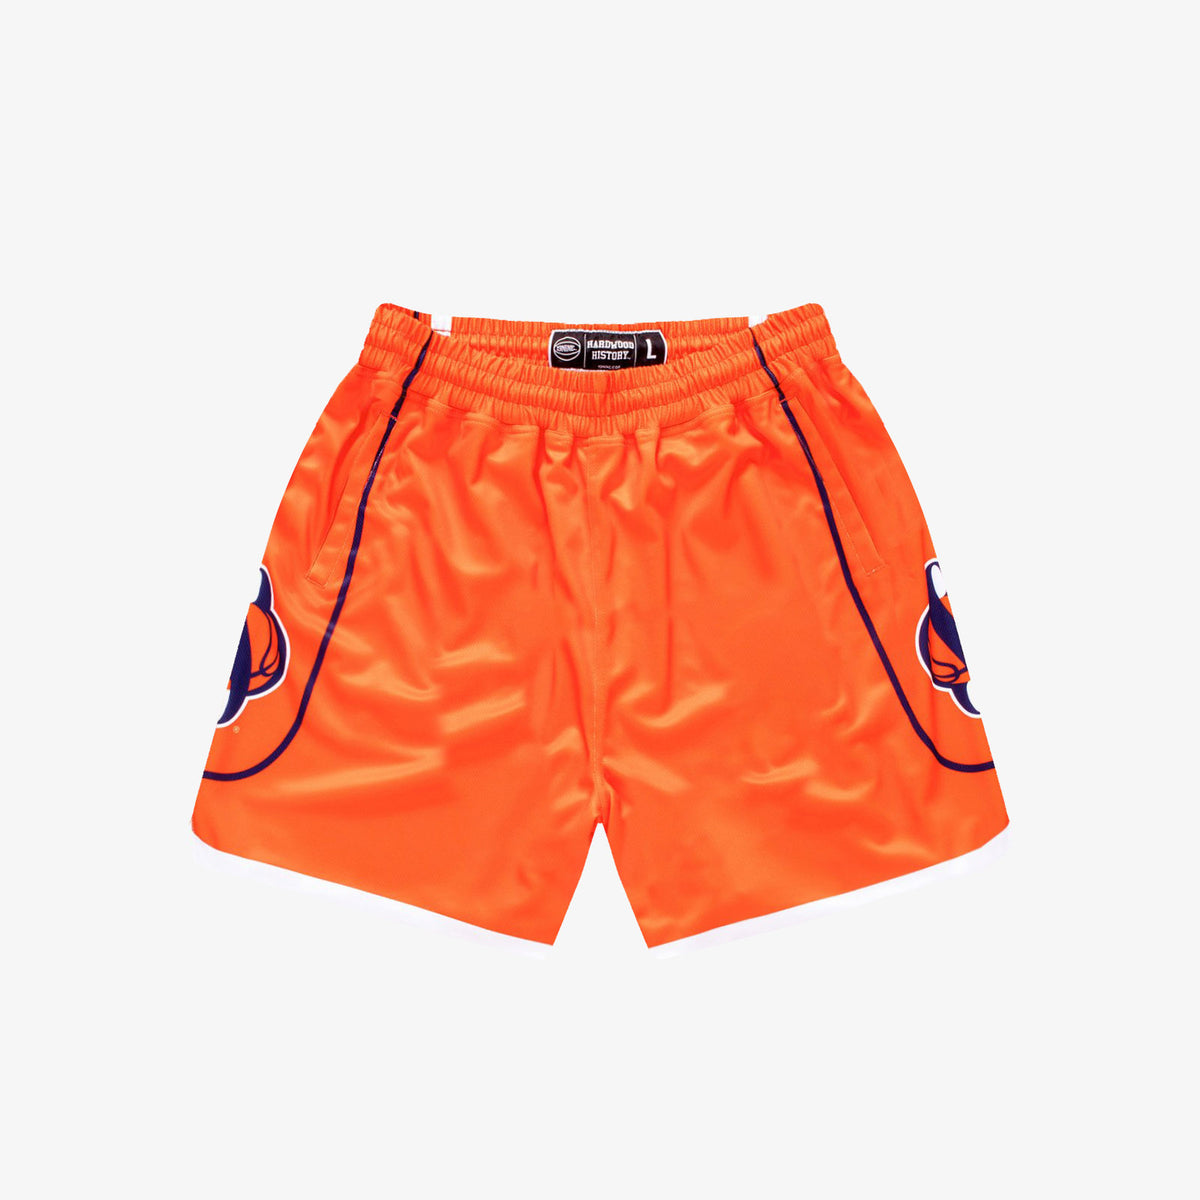 Syracuse 2002-2003 Retro College Basketball Shorts - Orange